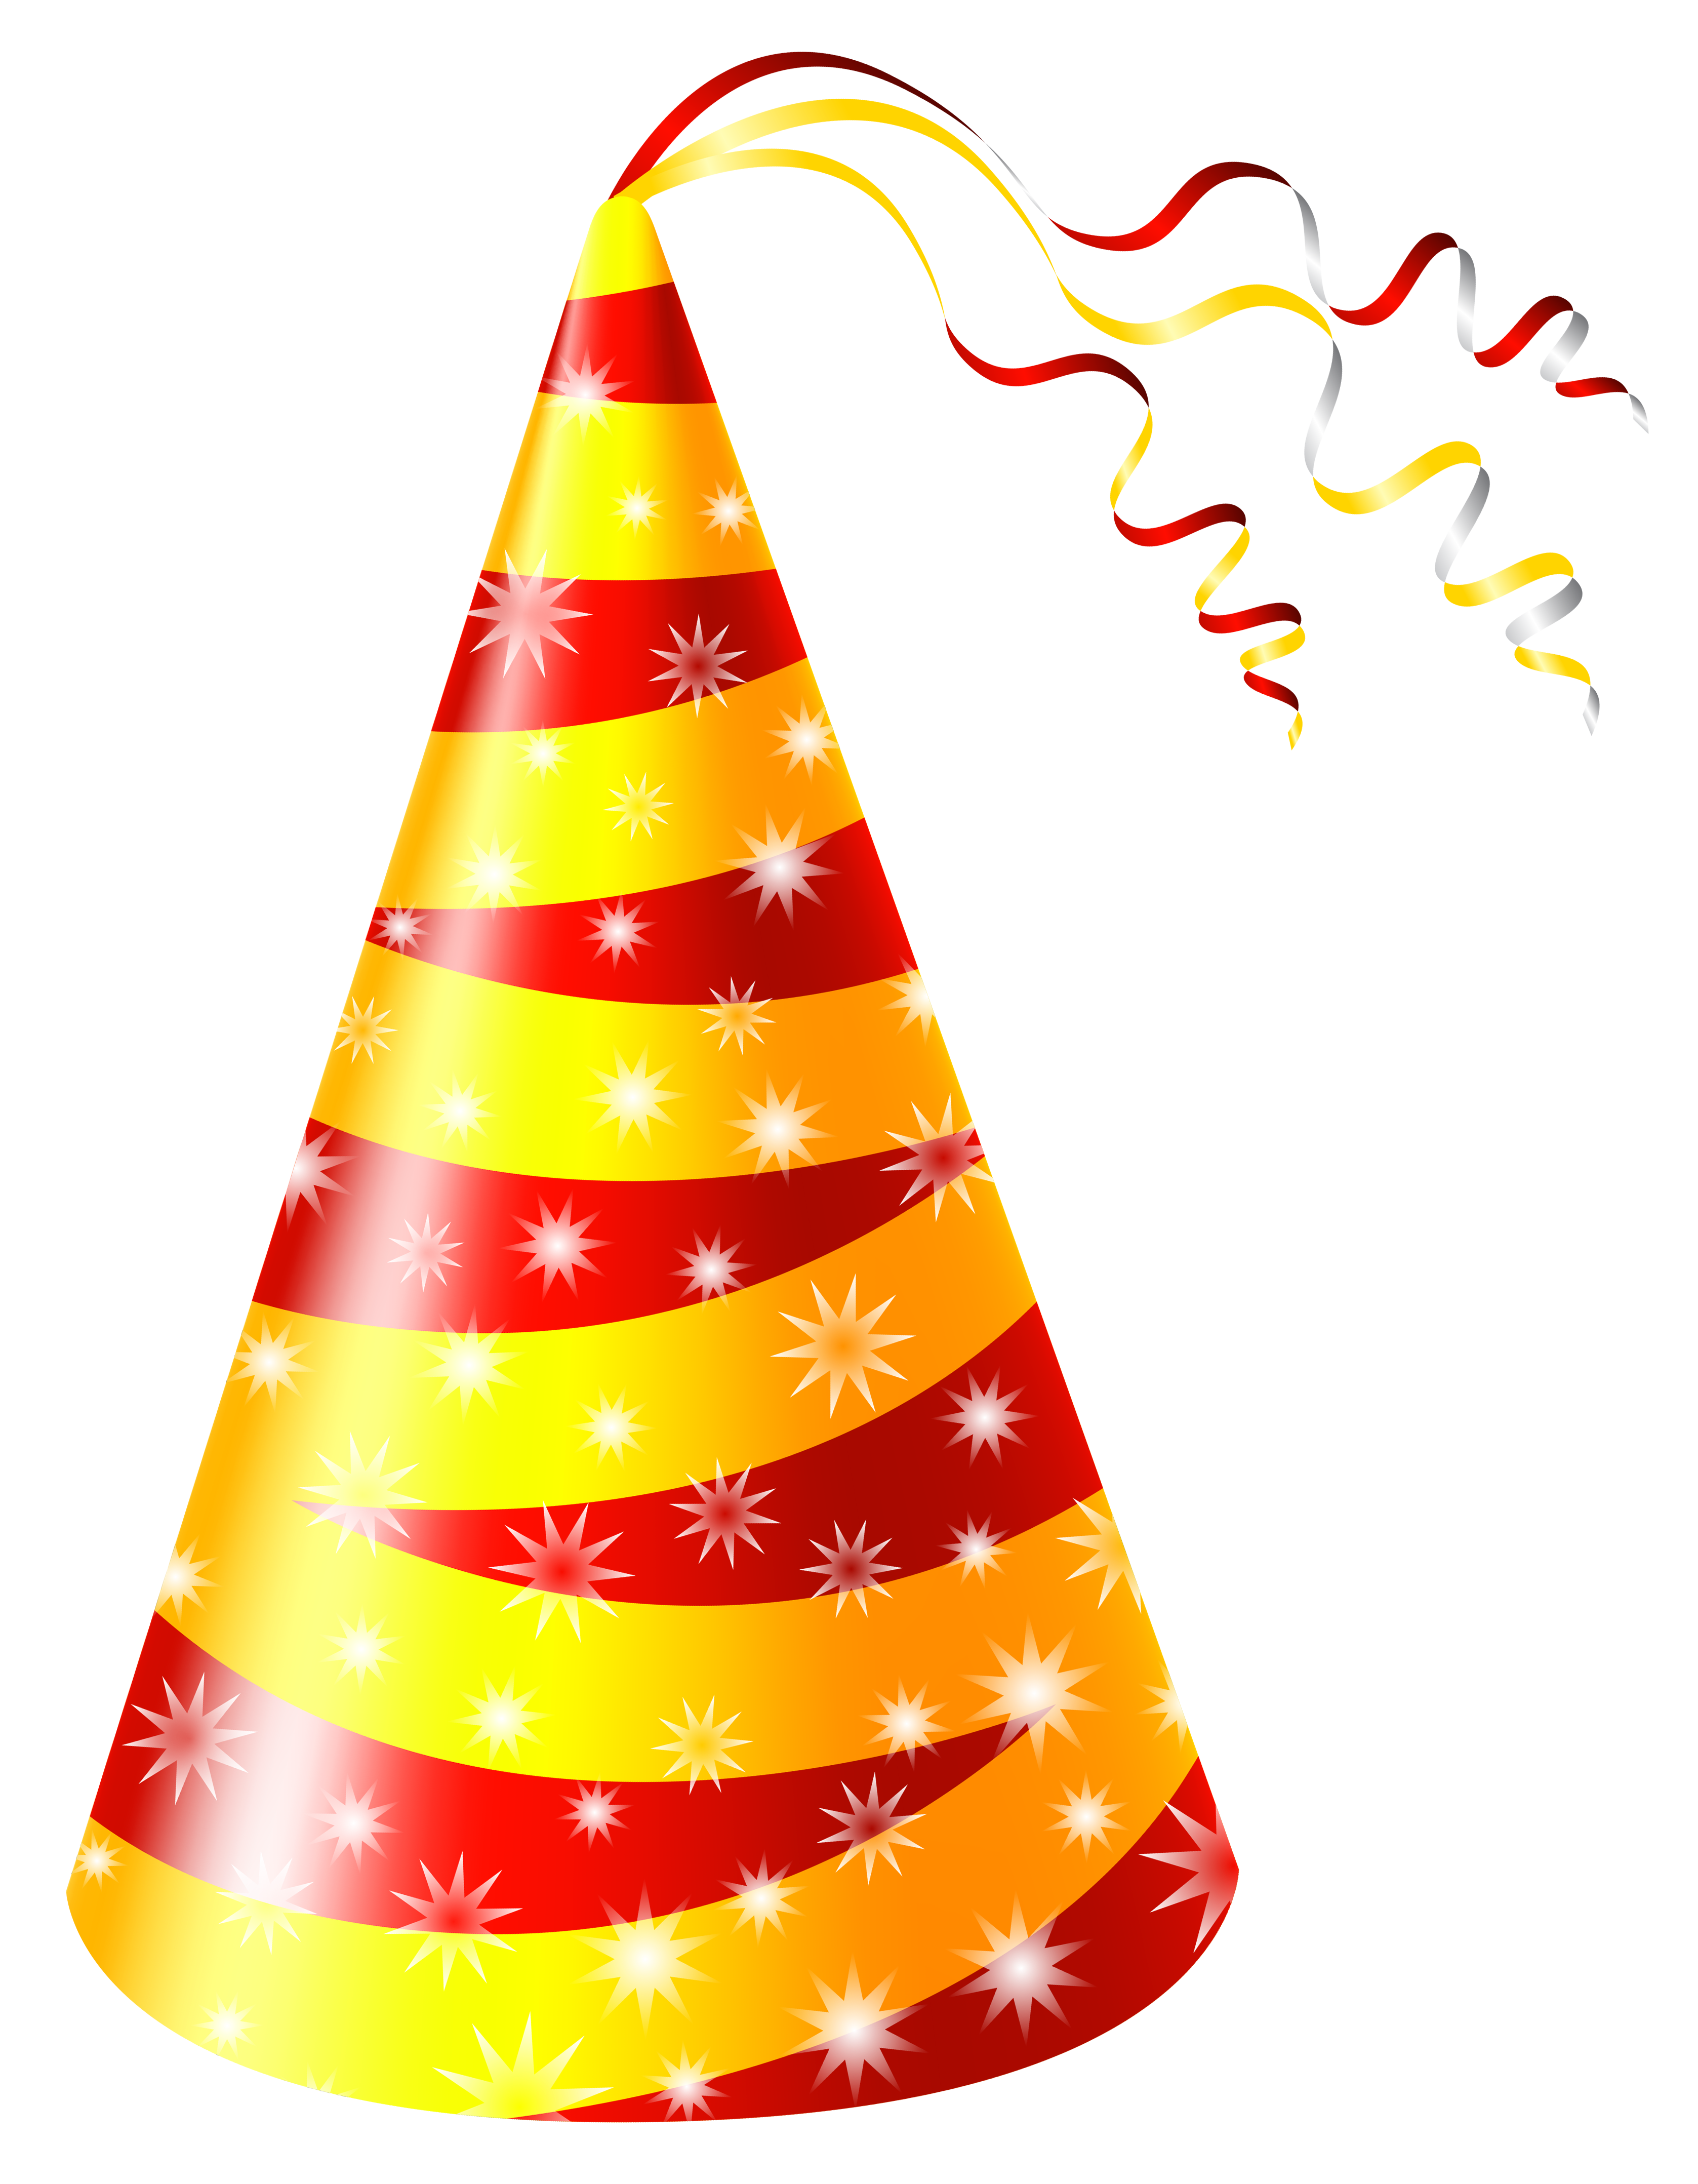 Clipart birthday caps. Yellow and red party